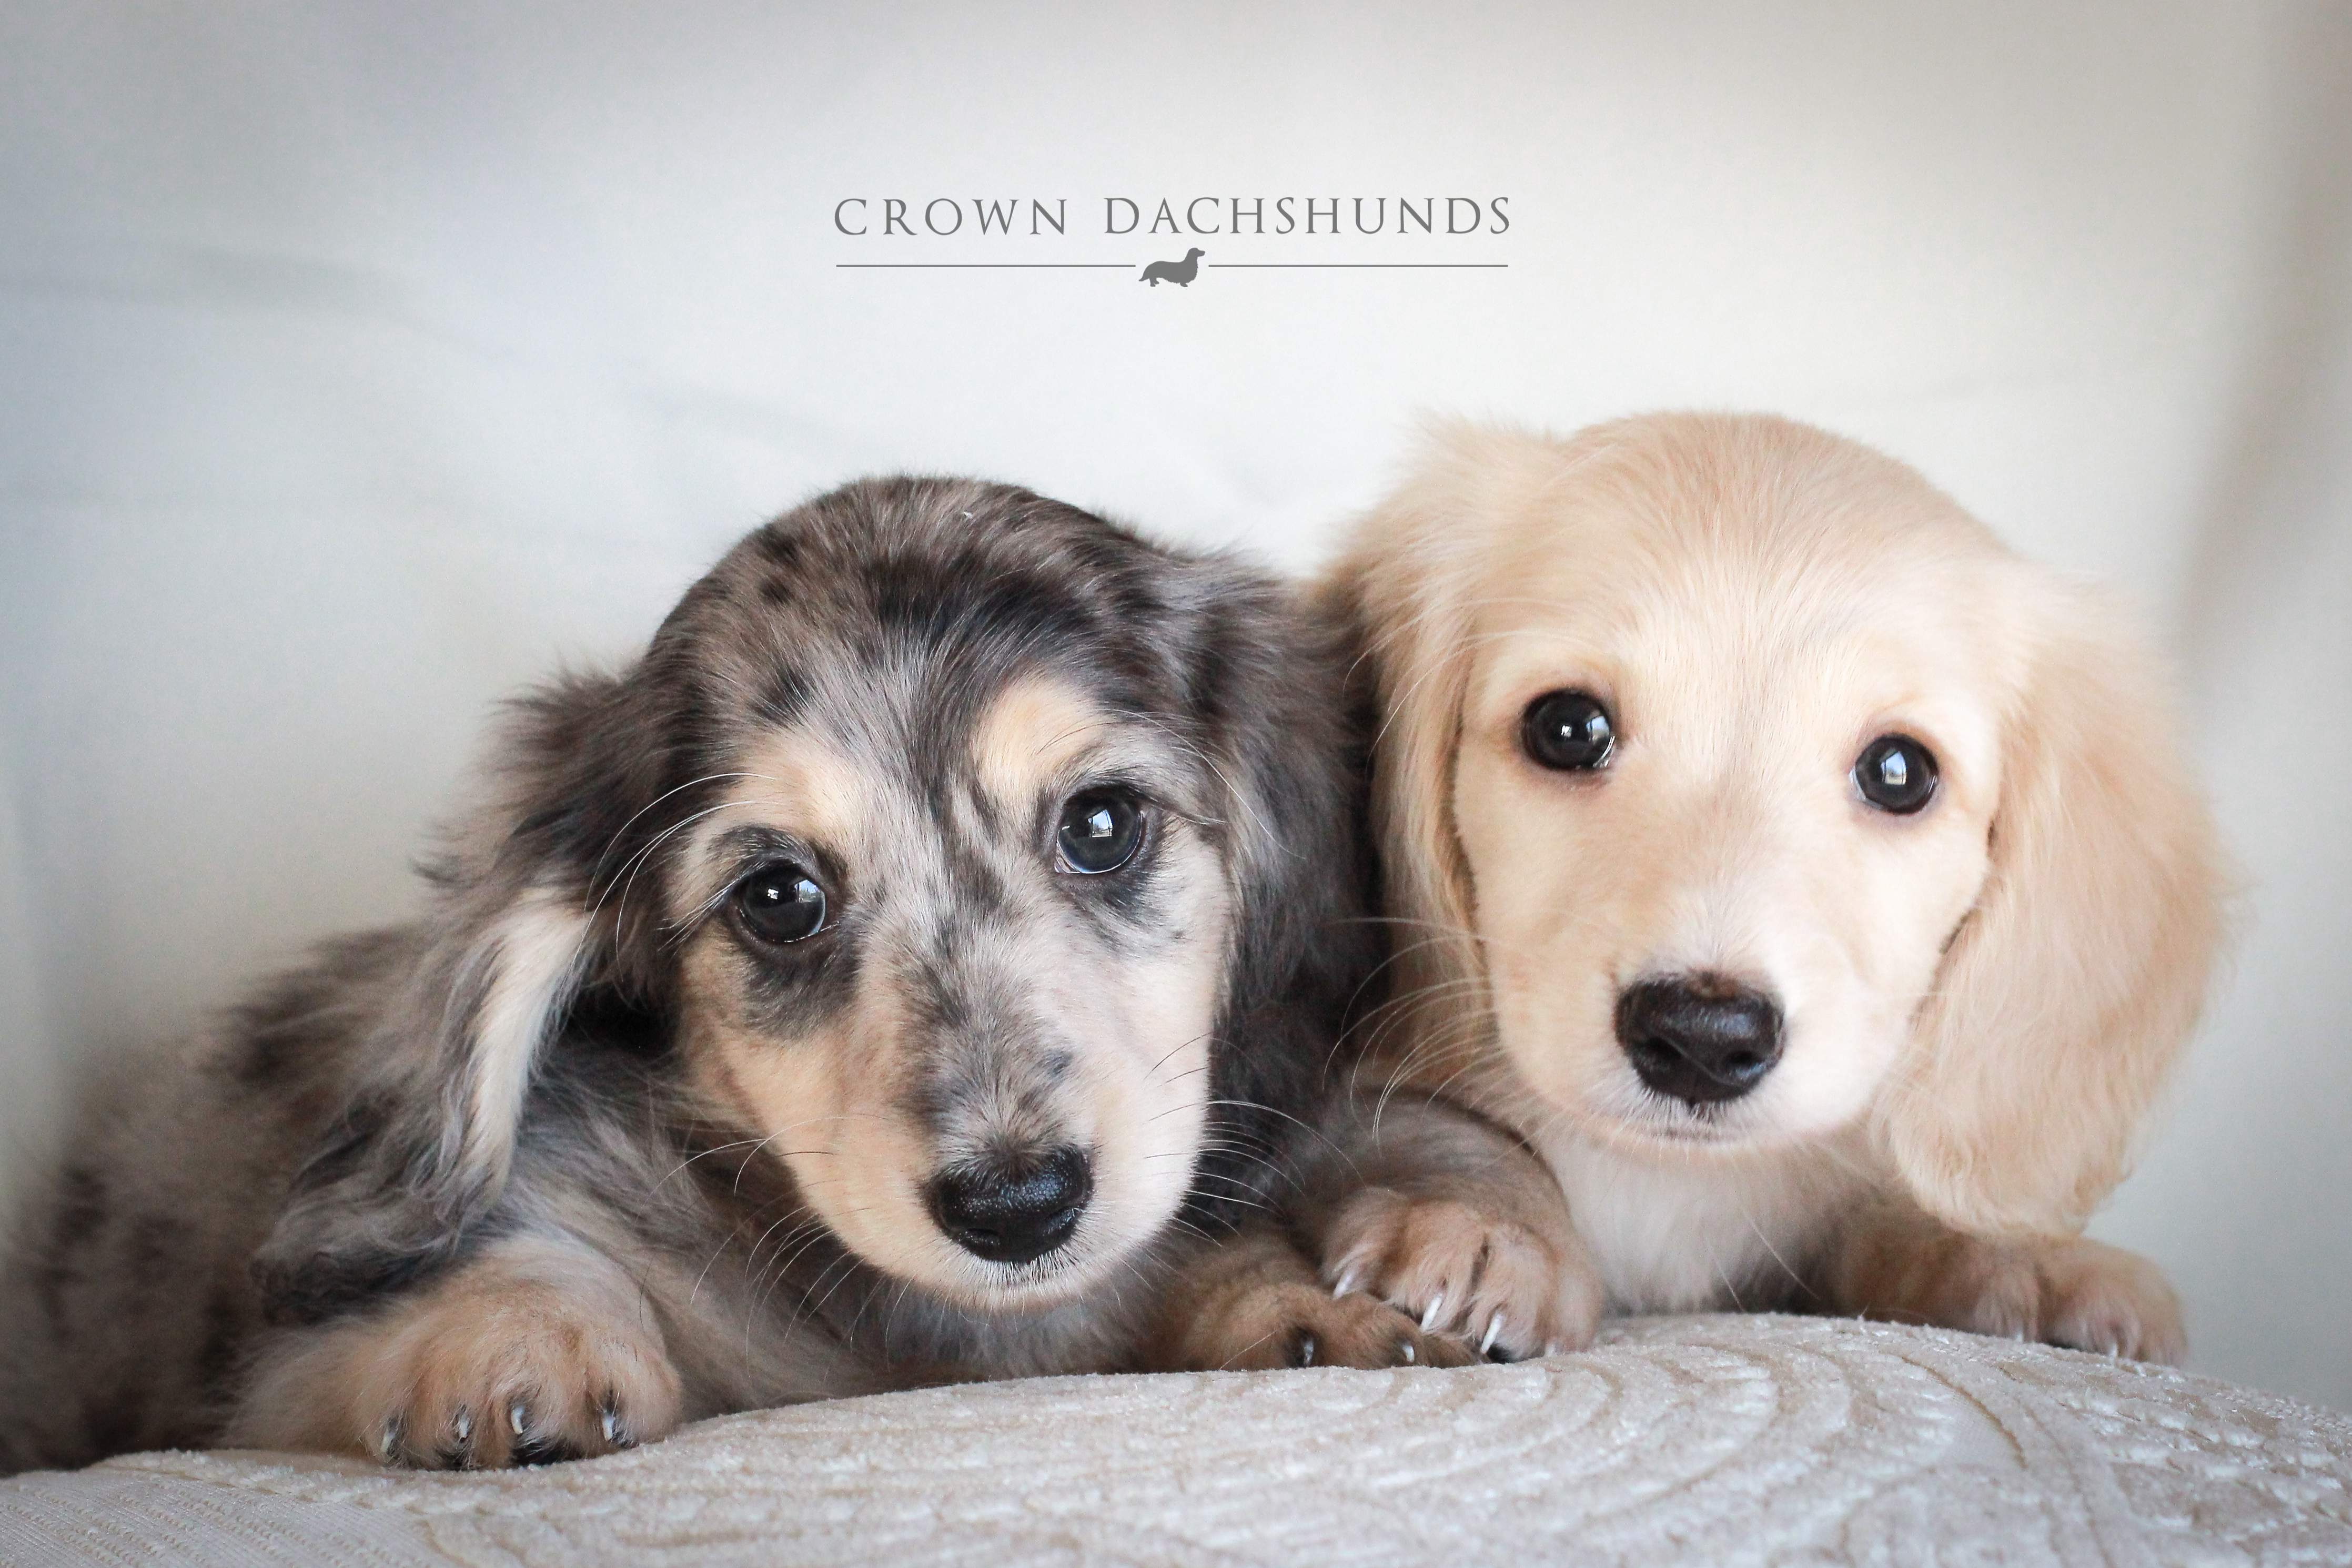 Puppies | Crown Dachshunds